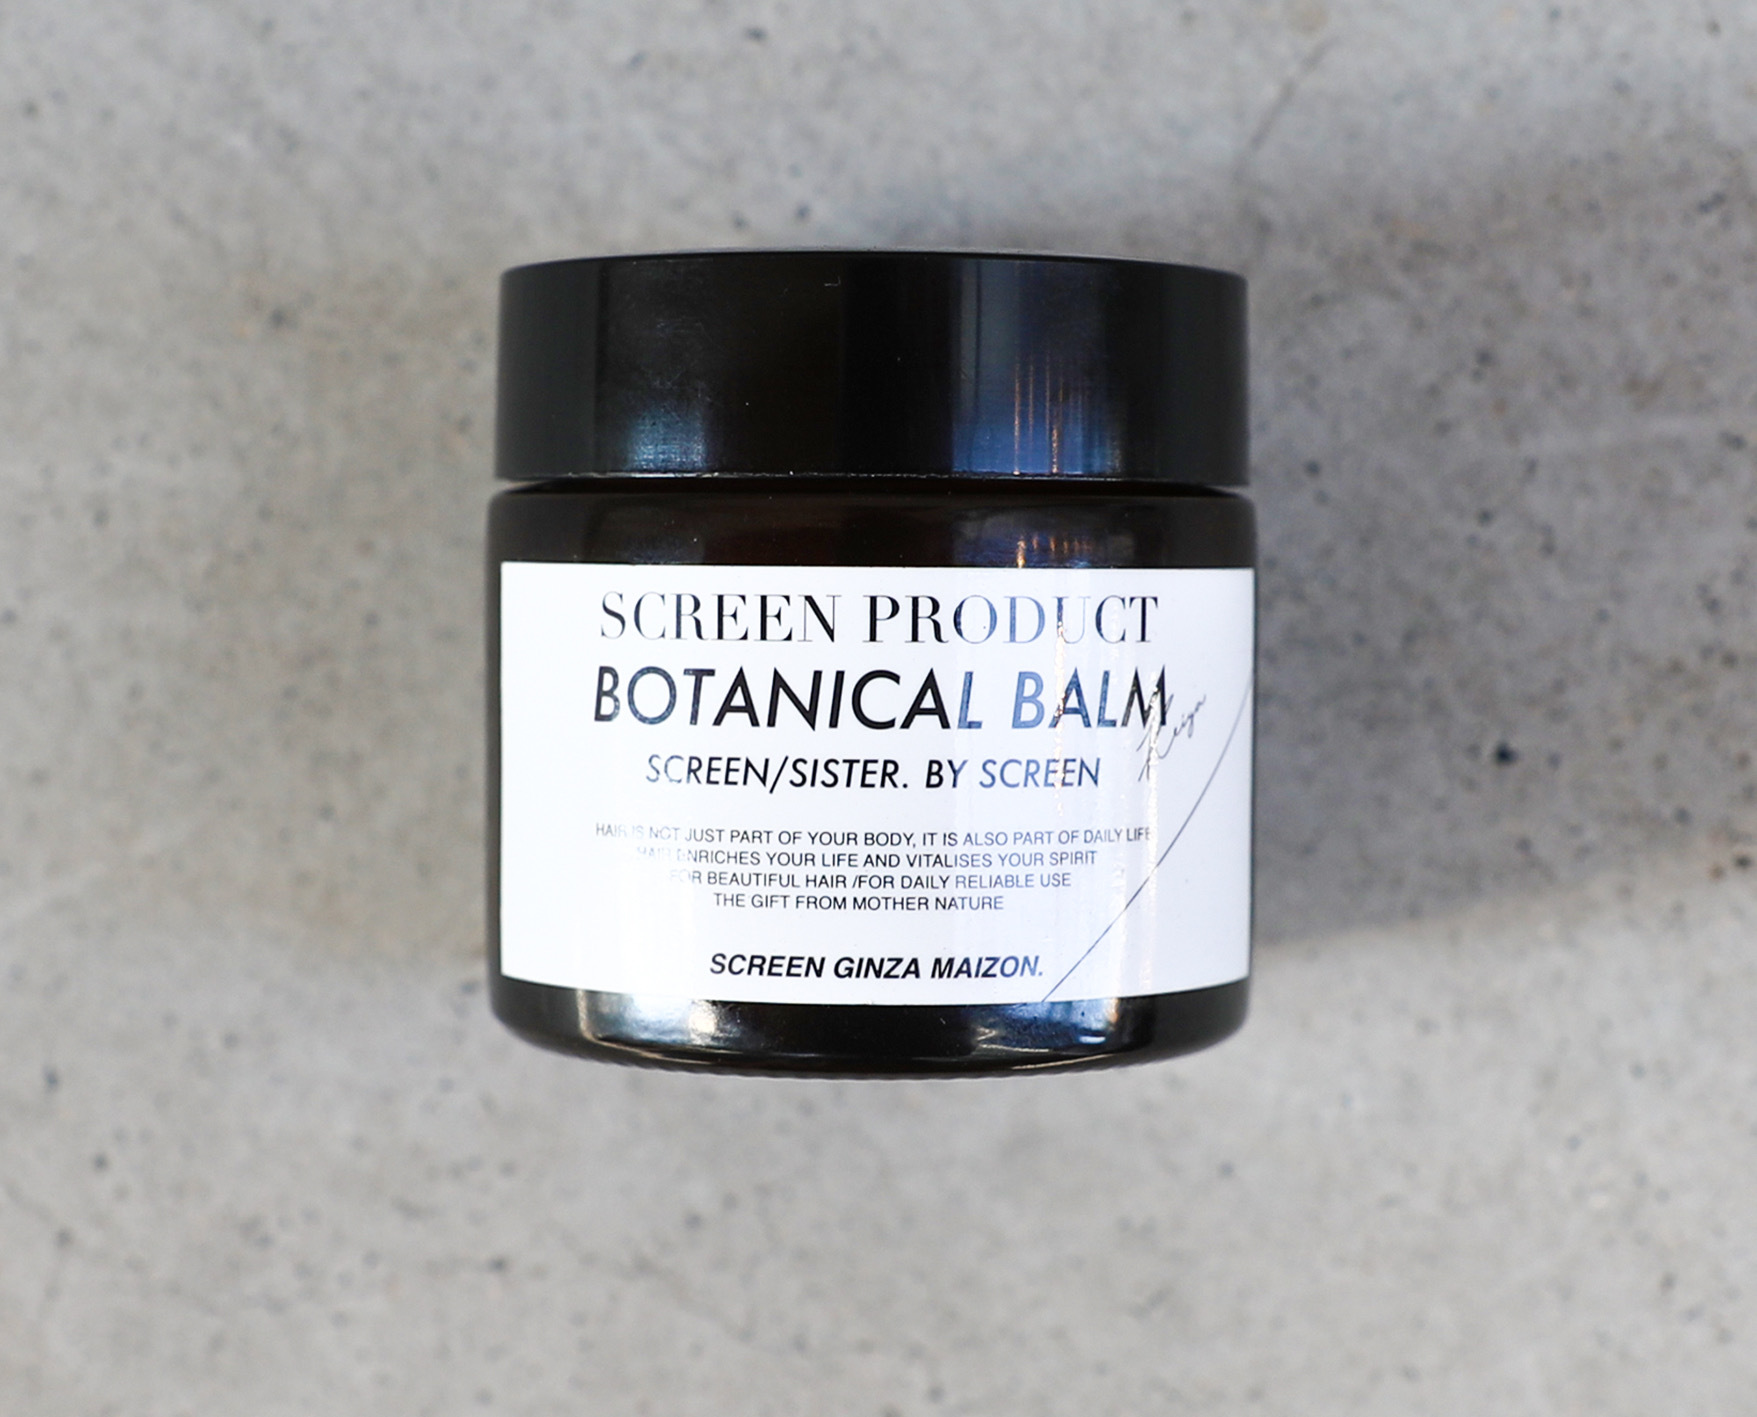 MAISON SCREEN botanical balm